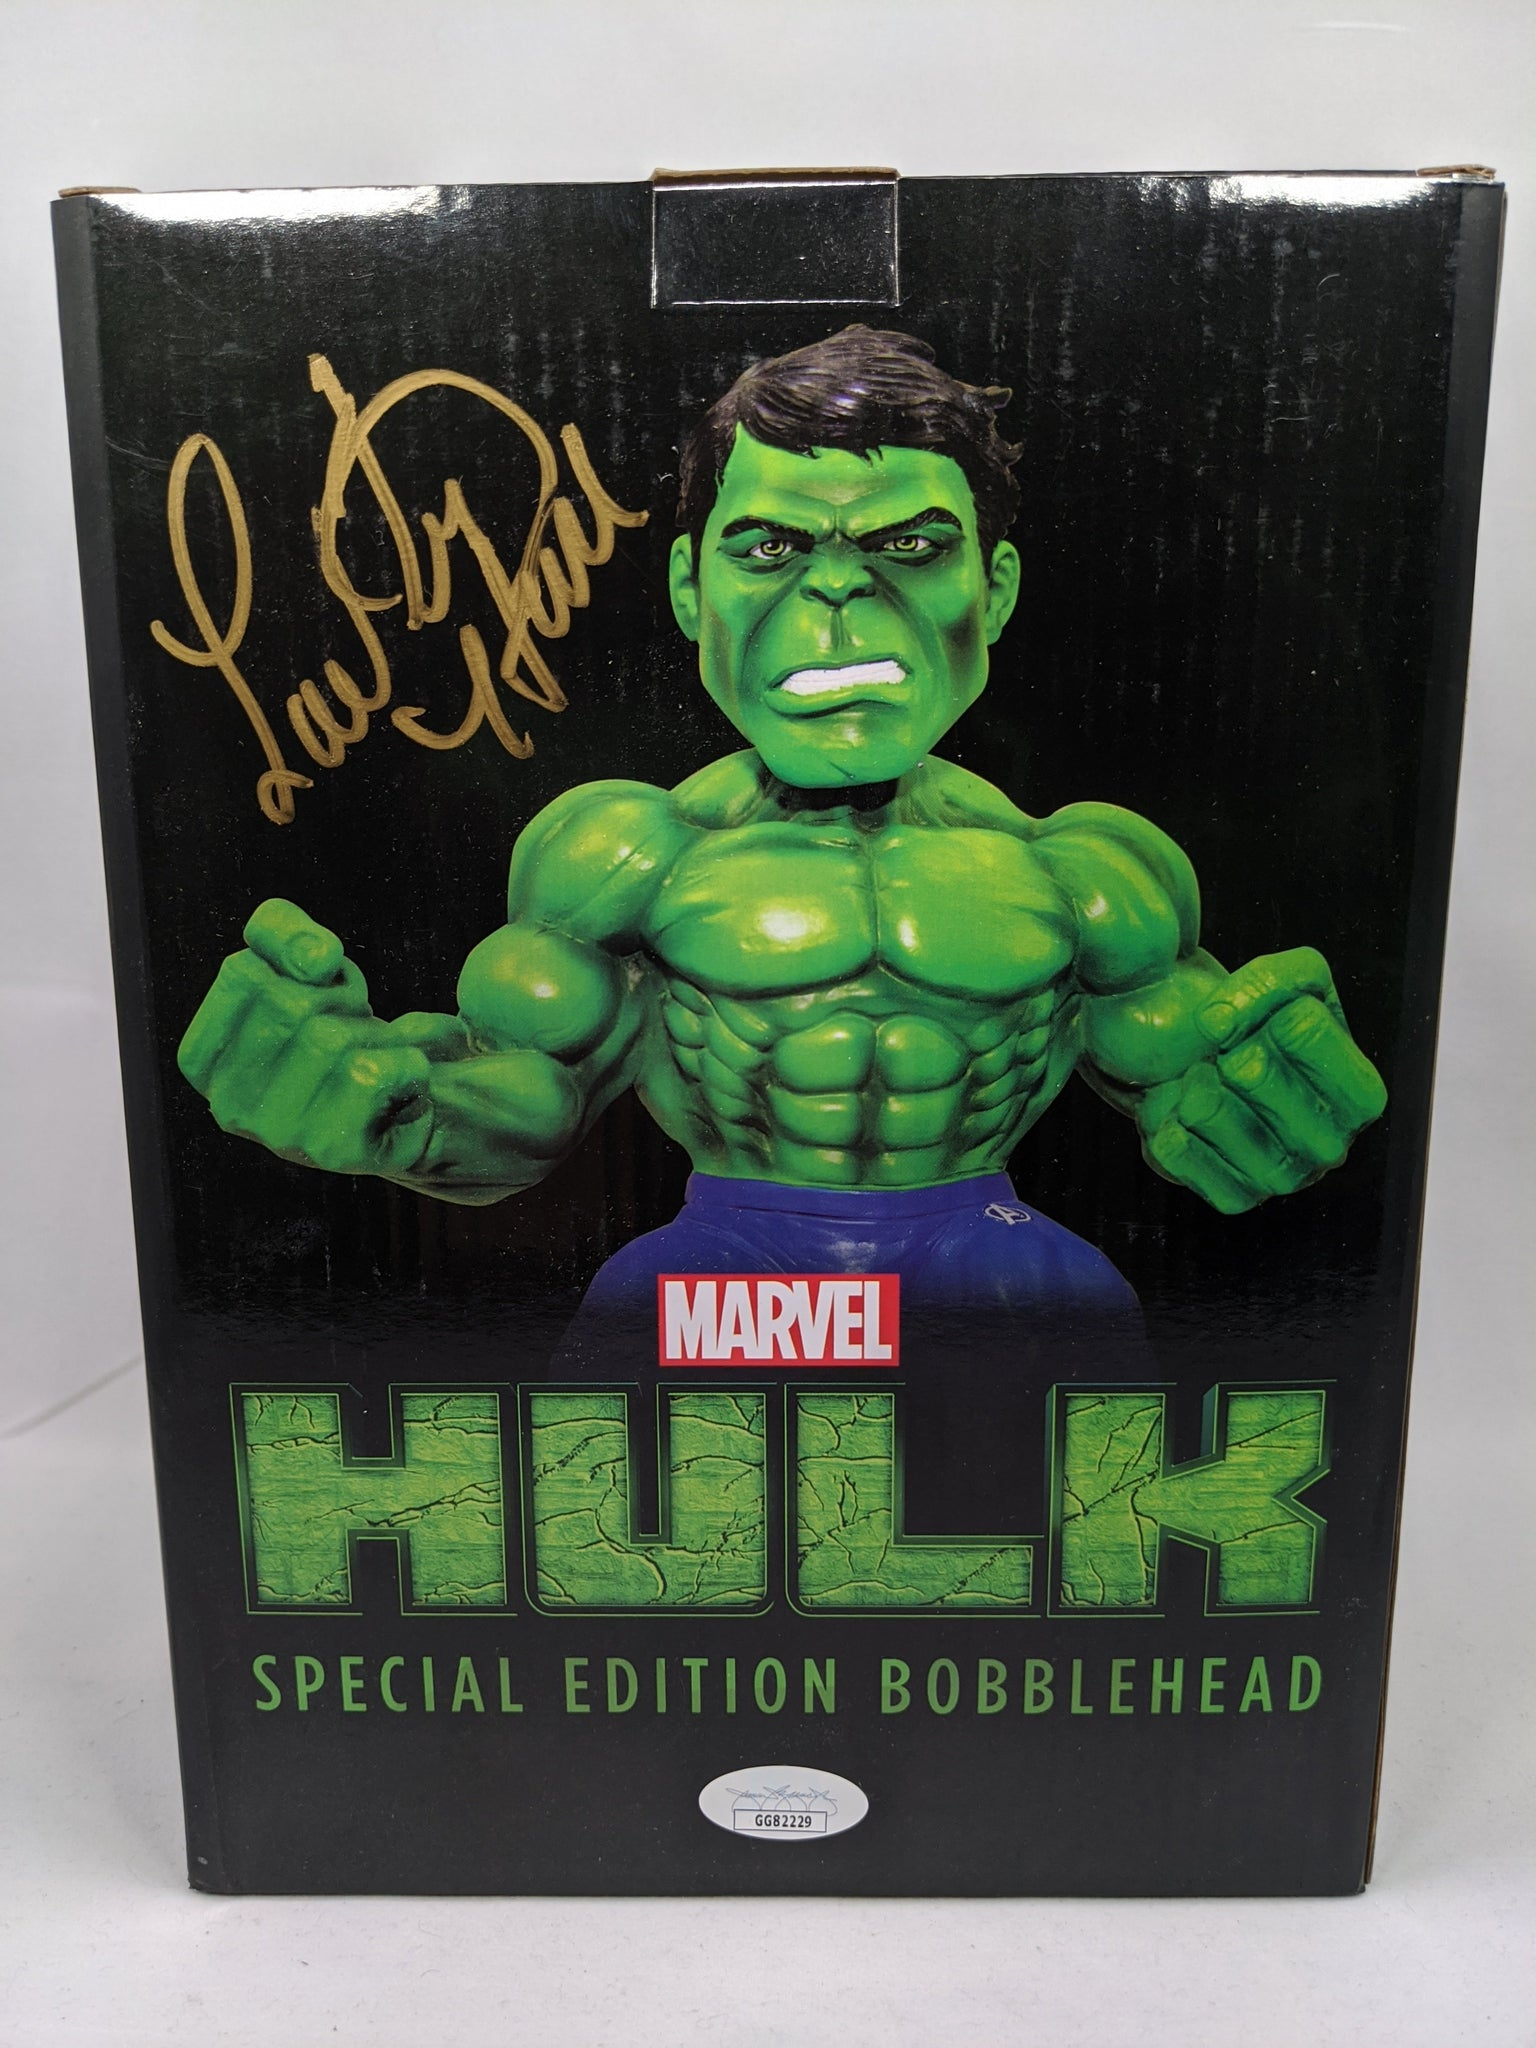 Marvel Hulk Special Edition Bobblehead JSA Certified Vinyl Figure Signed by Lou Ferrigno GalaxyCon